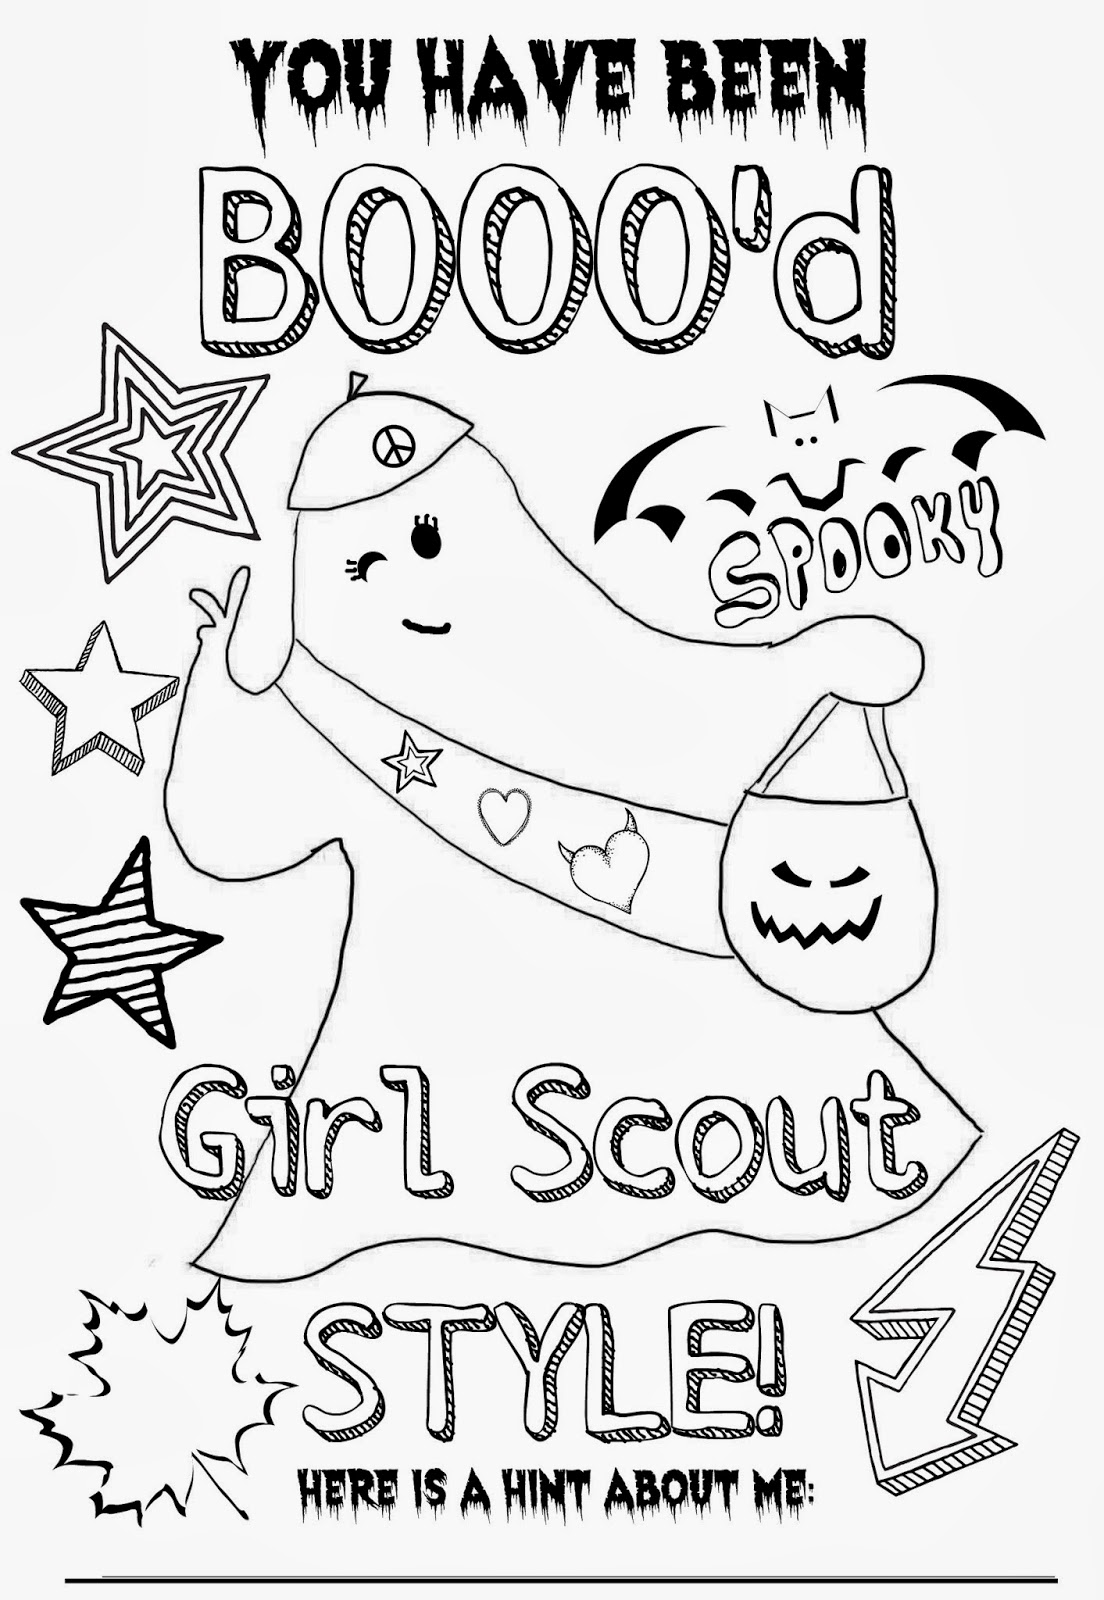 Best Girls Scout Brownie Quotes Quotesgram